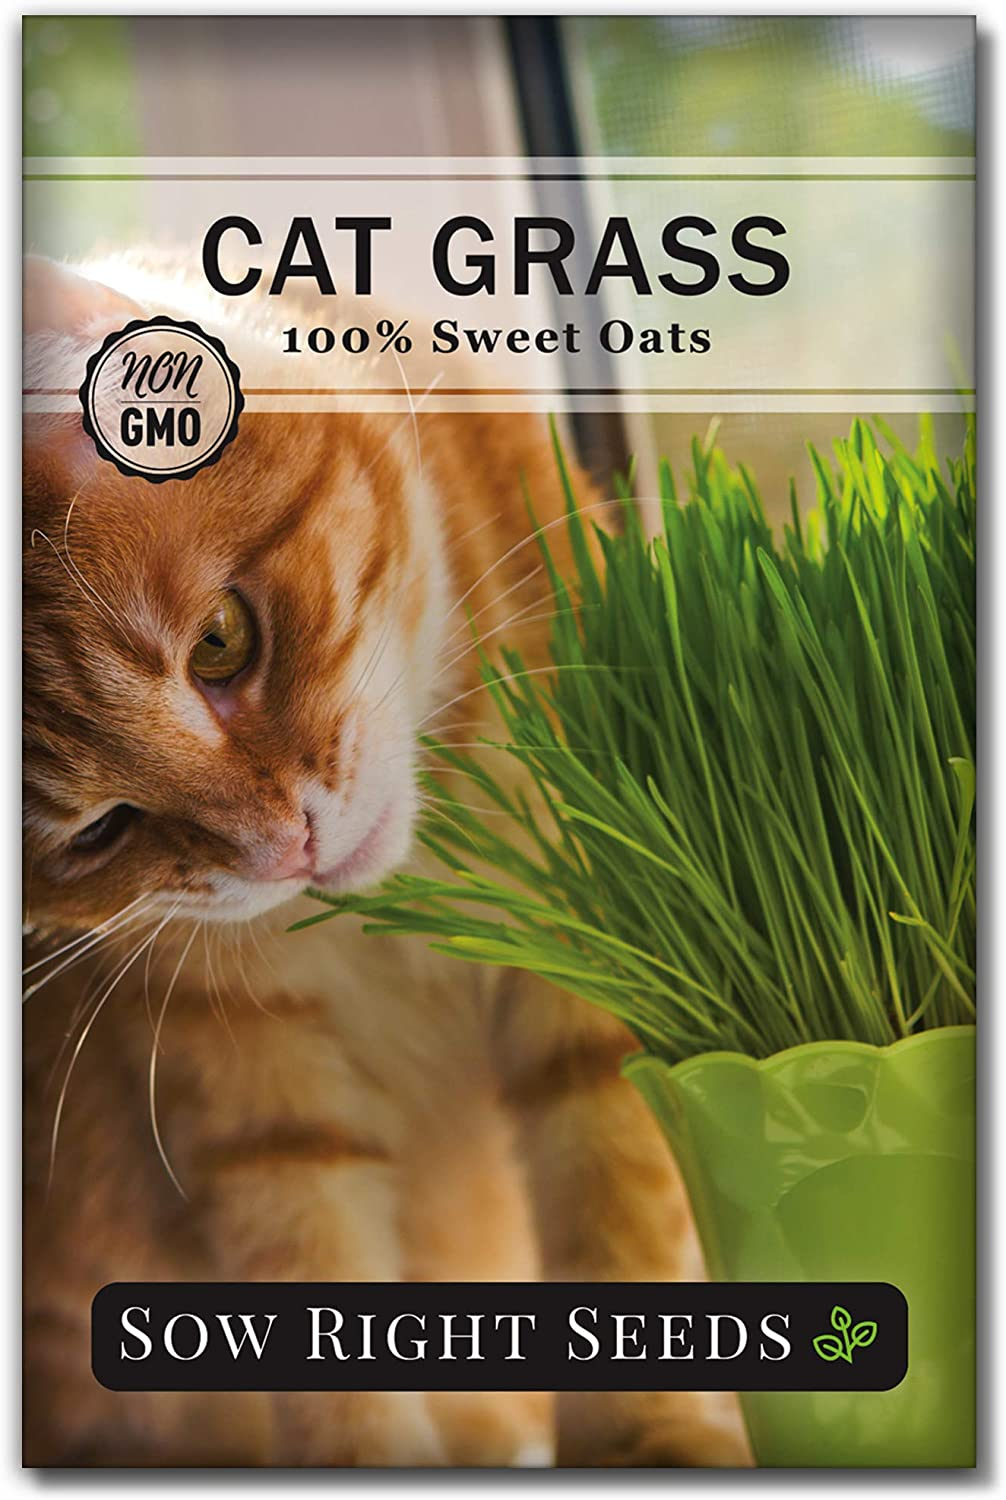 Sow latest Right Seeds - Cat Grass Seed Easy Outlet ☆ Free Shipping Planting Oat to for Grow